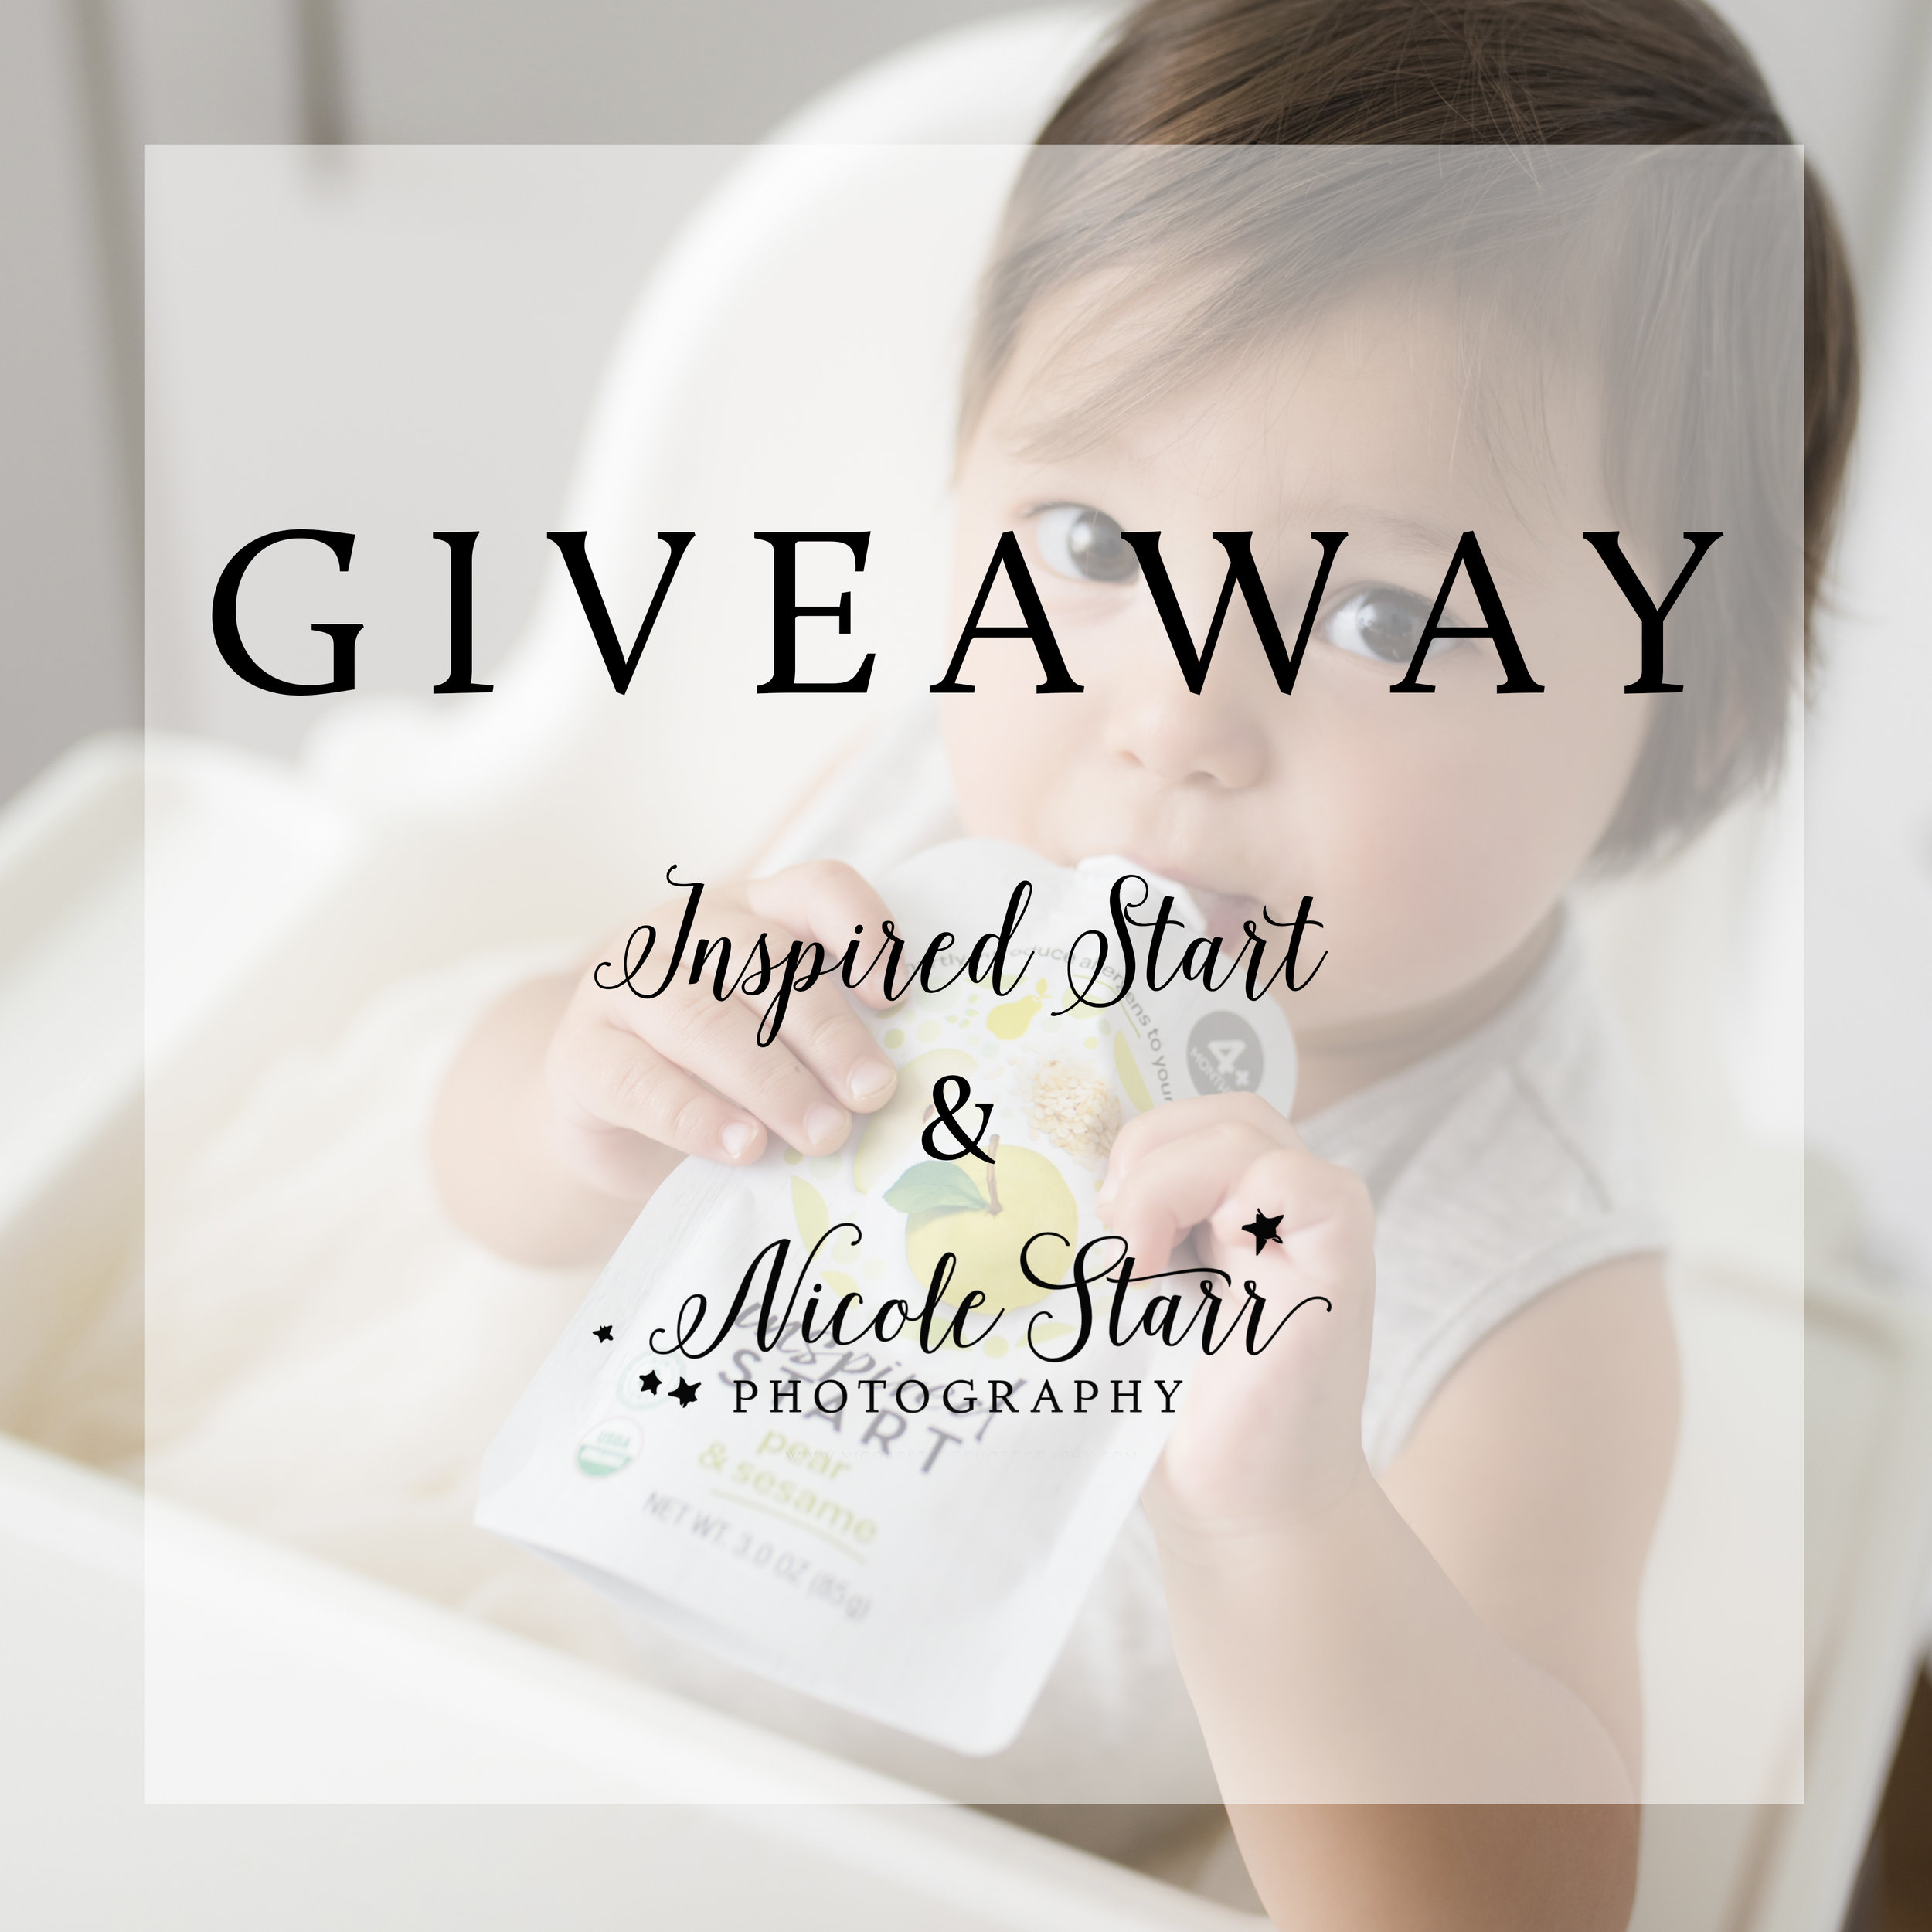 inspired start giveaway contest with nicole starr photography